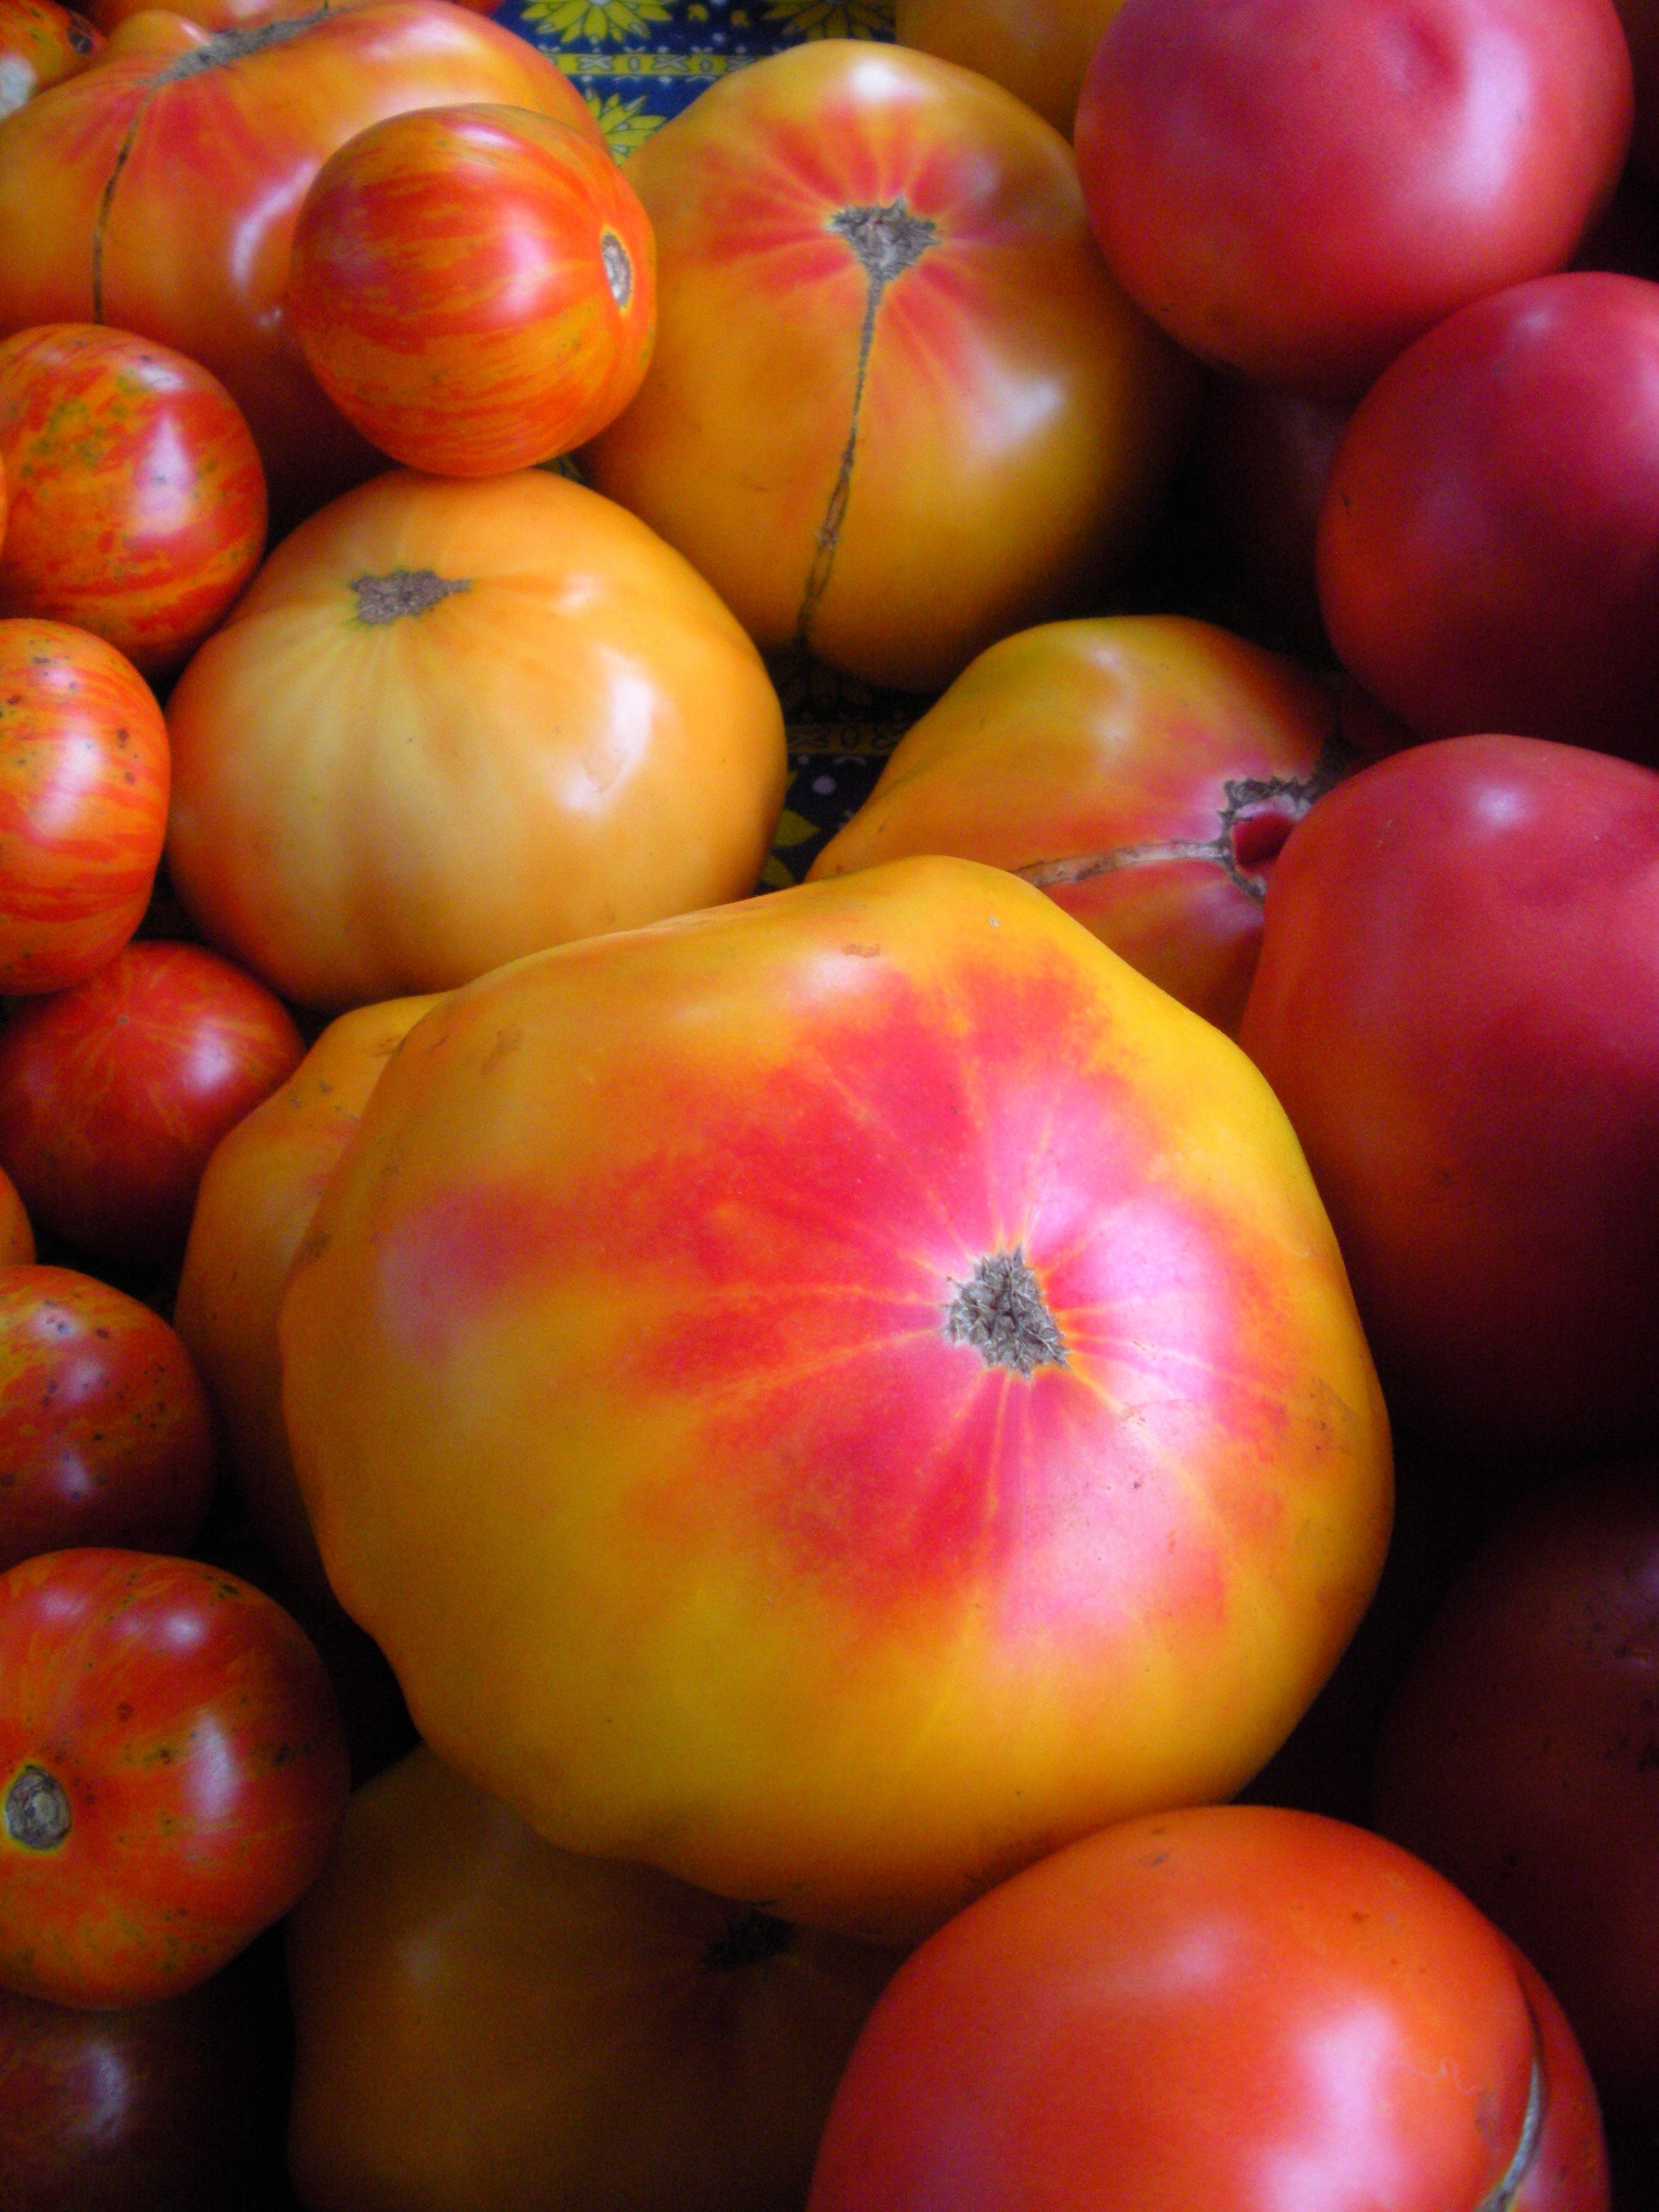 Heirlooms at the market ~ Riverbank Farm - August 2008 (A.Gross)